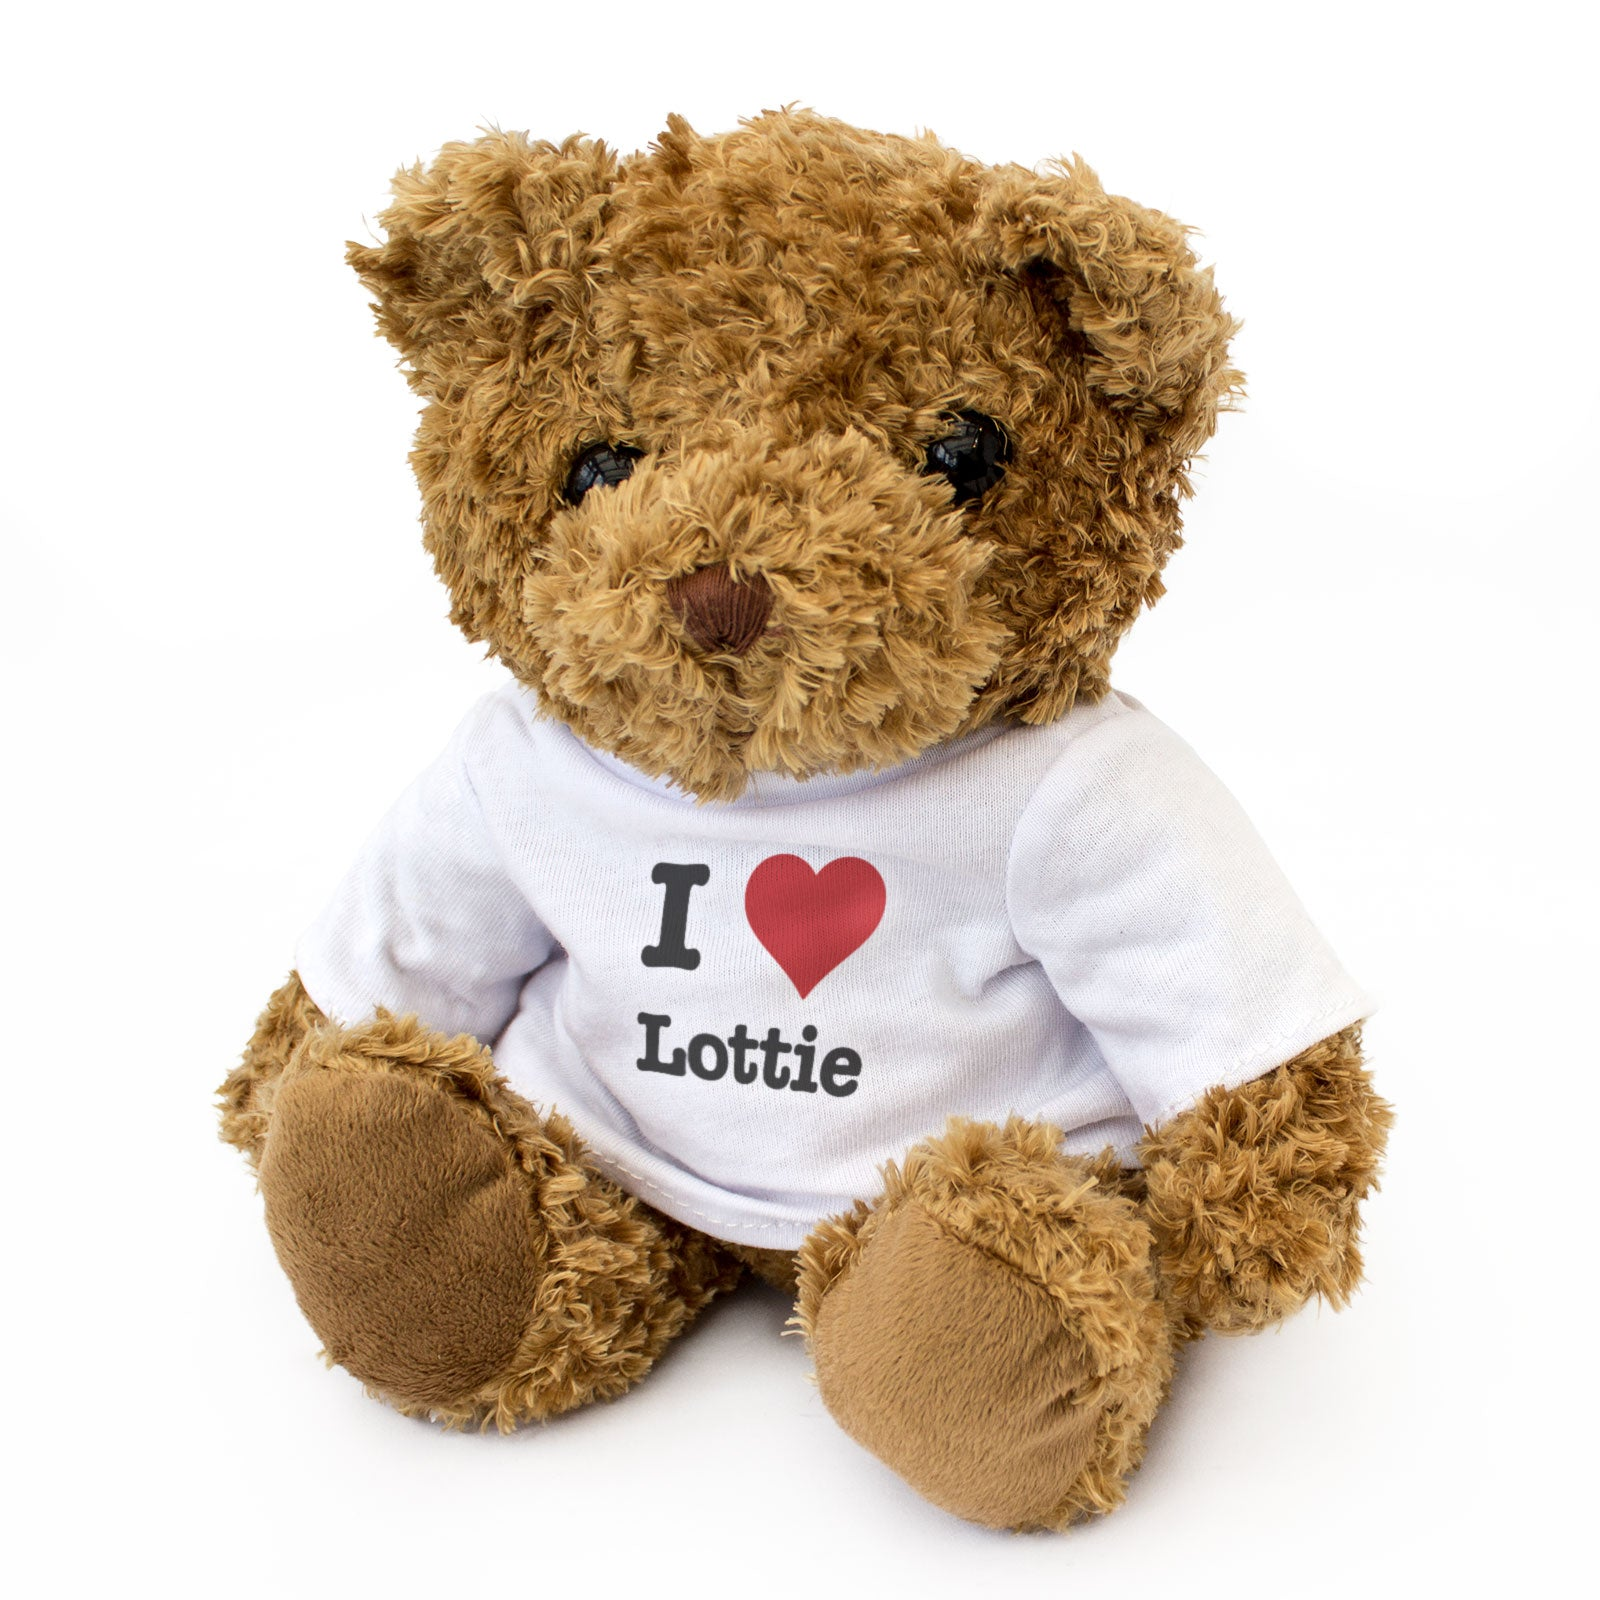 I Love Lottie - Teddy Bear